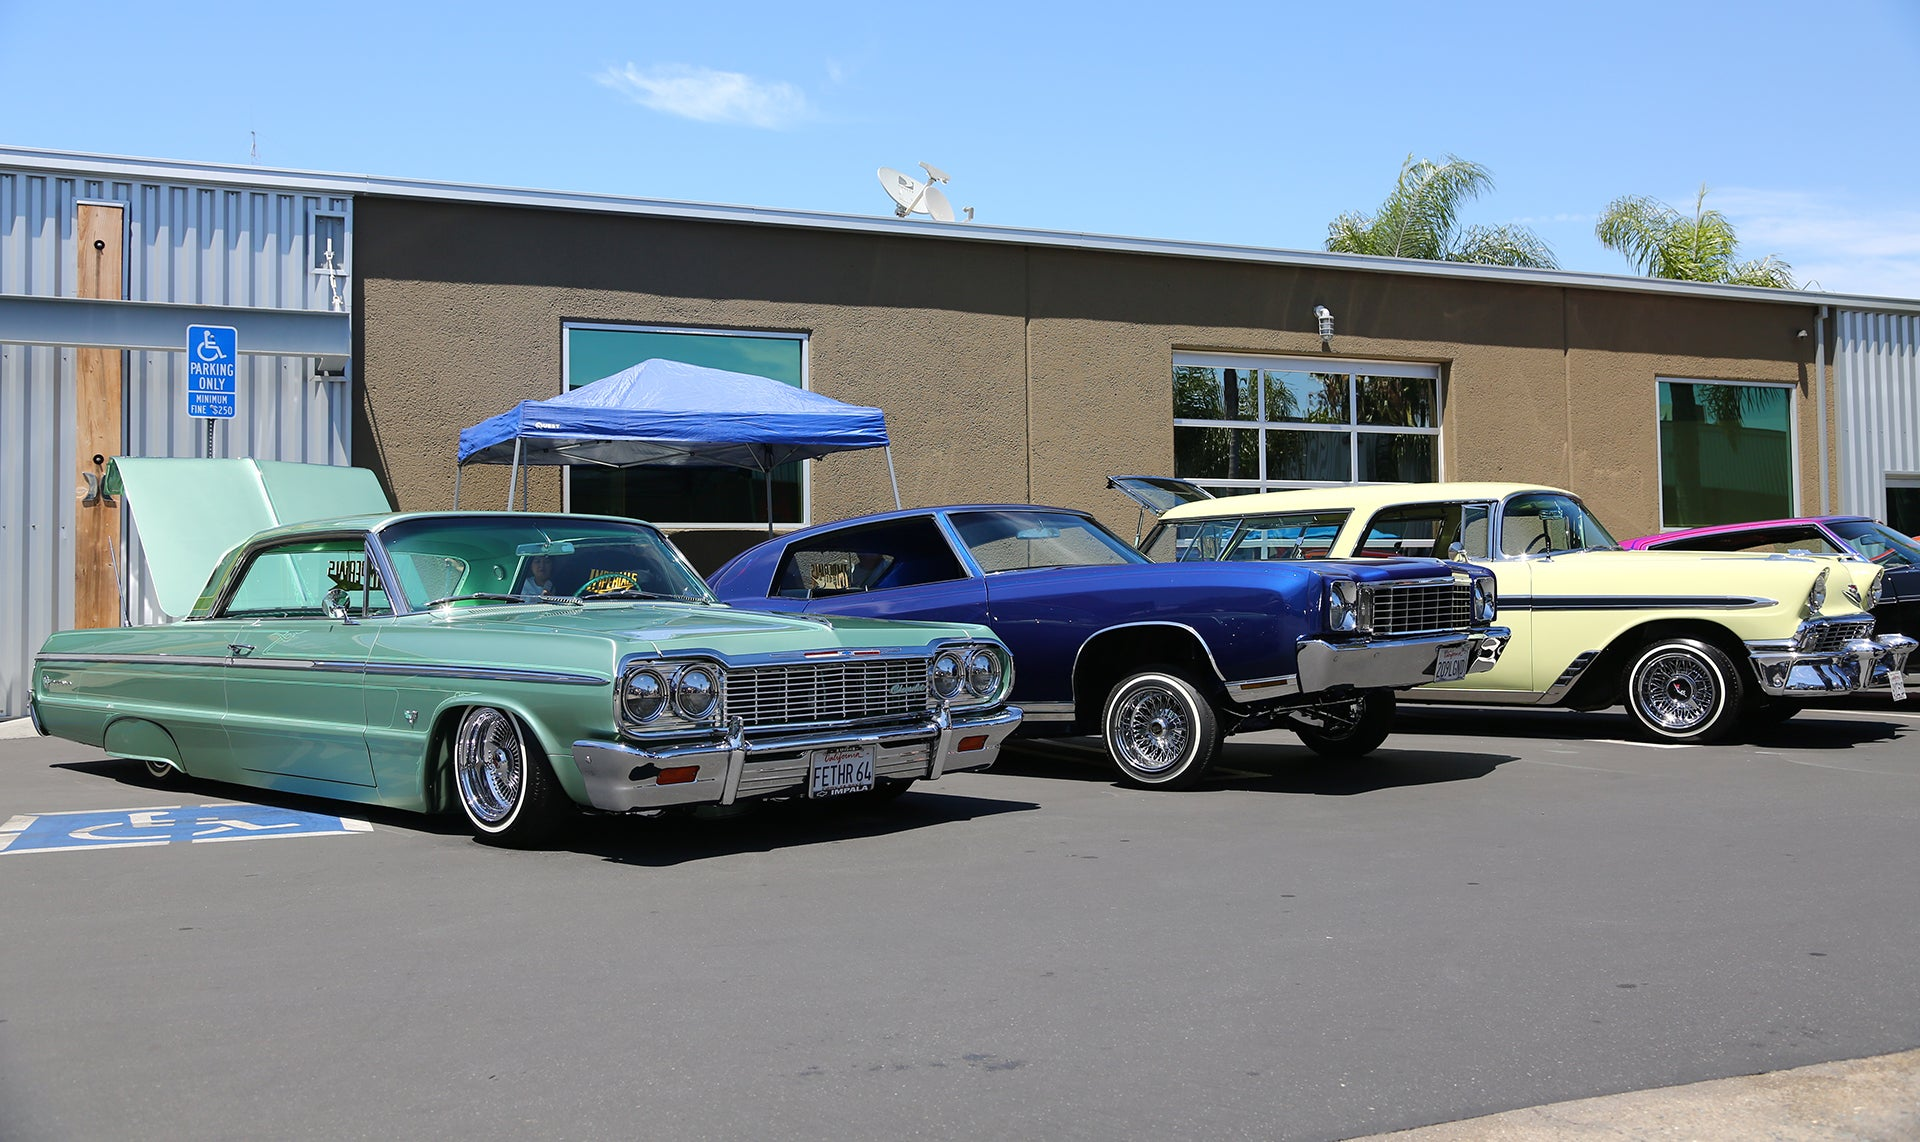 Lowriders lined up at Legacy show